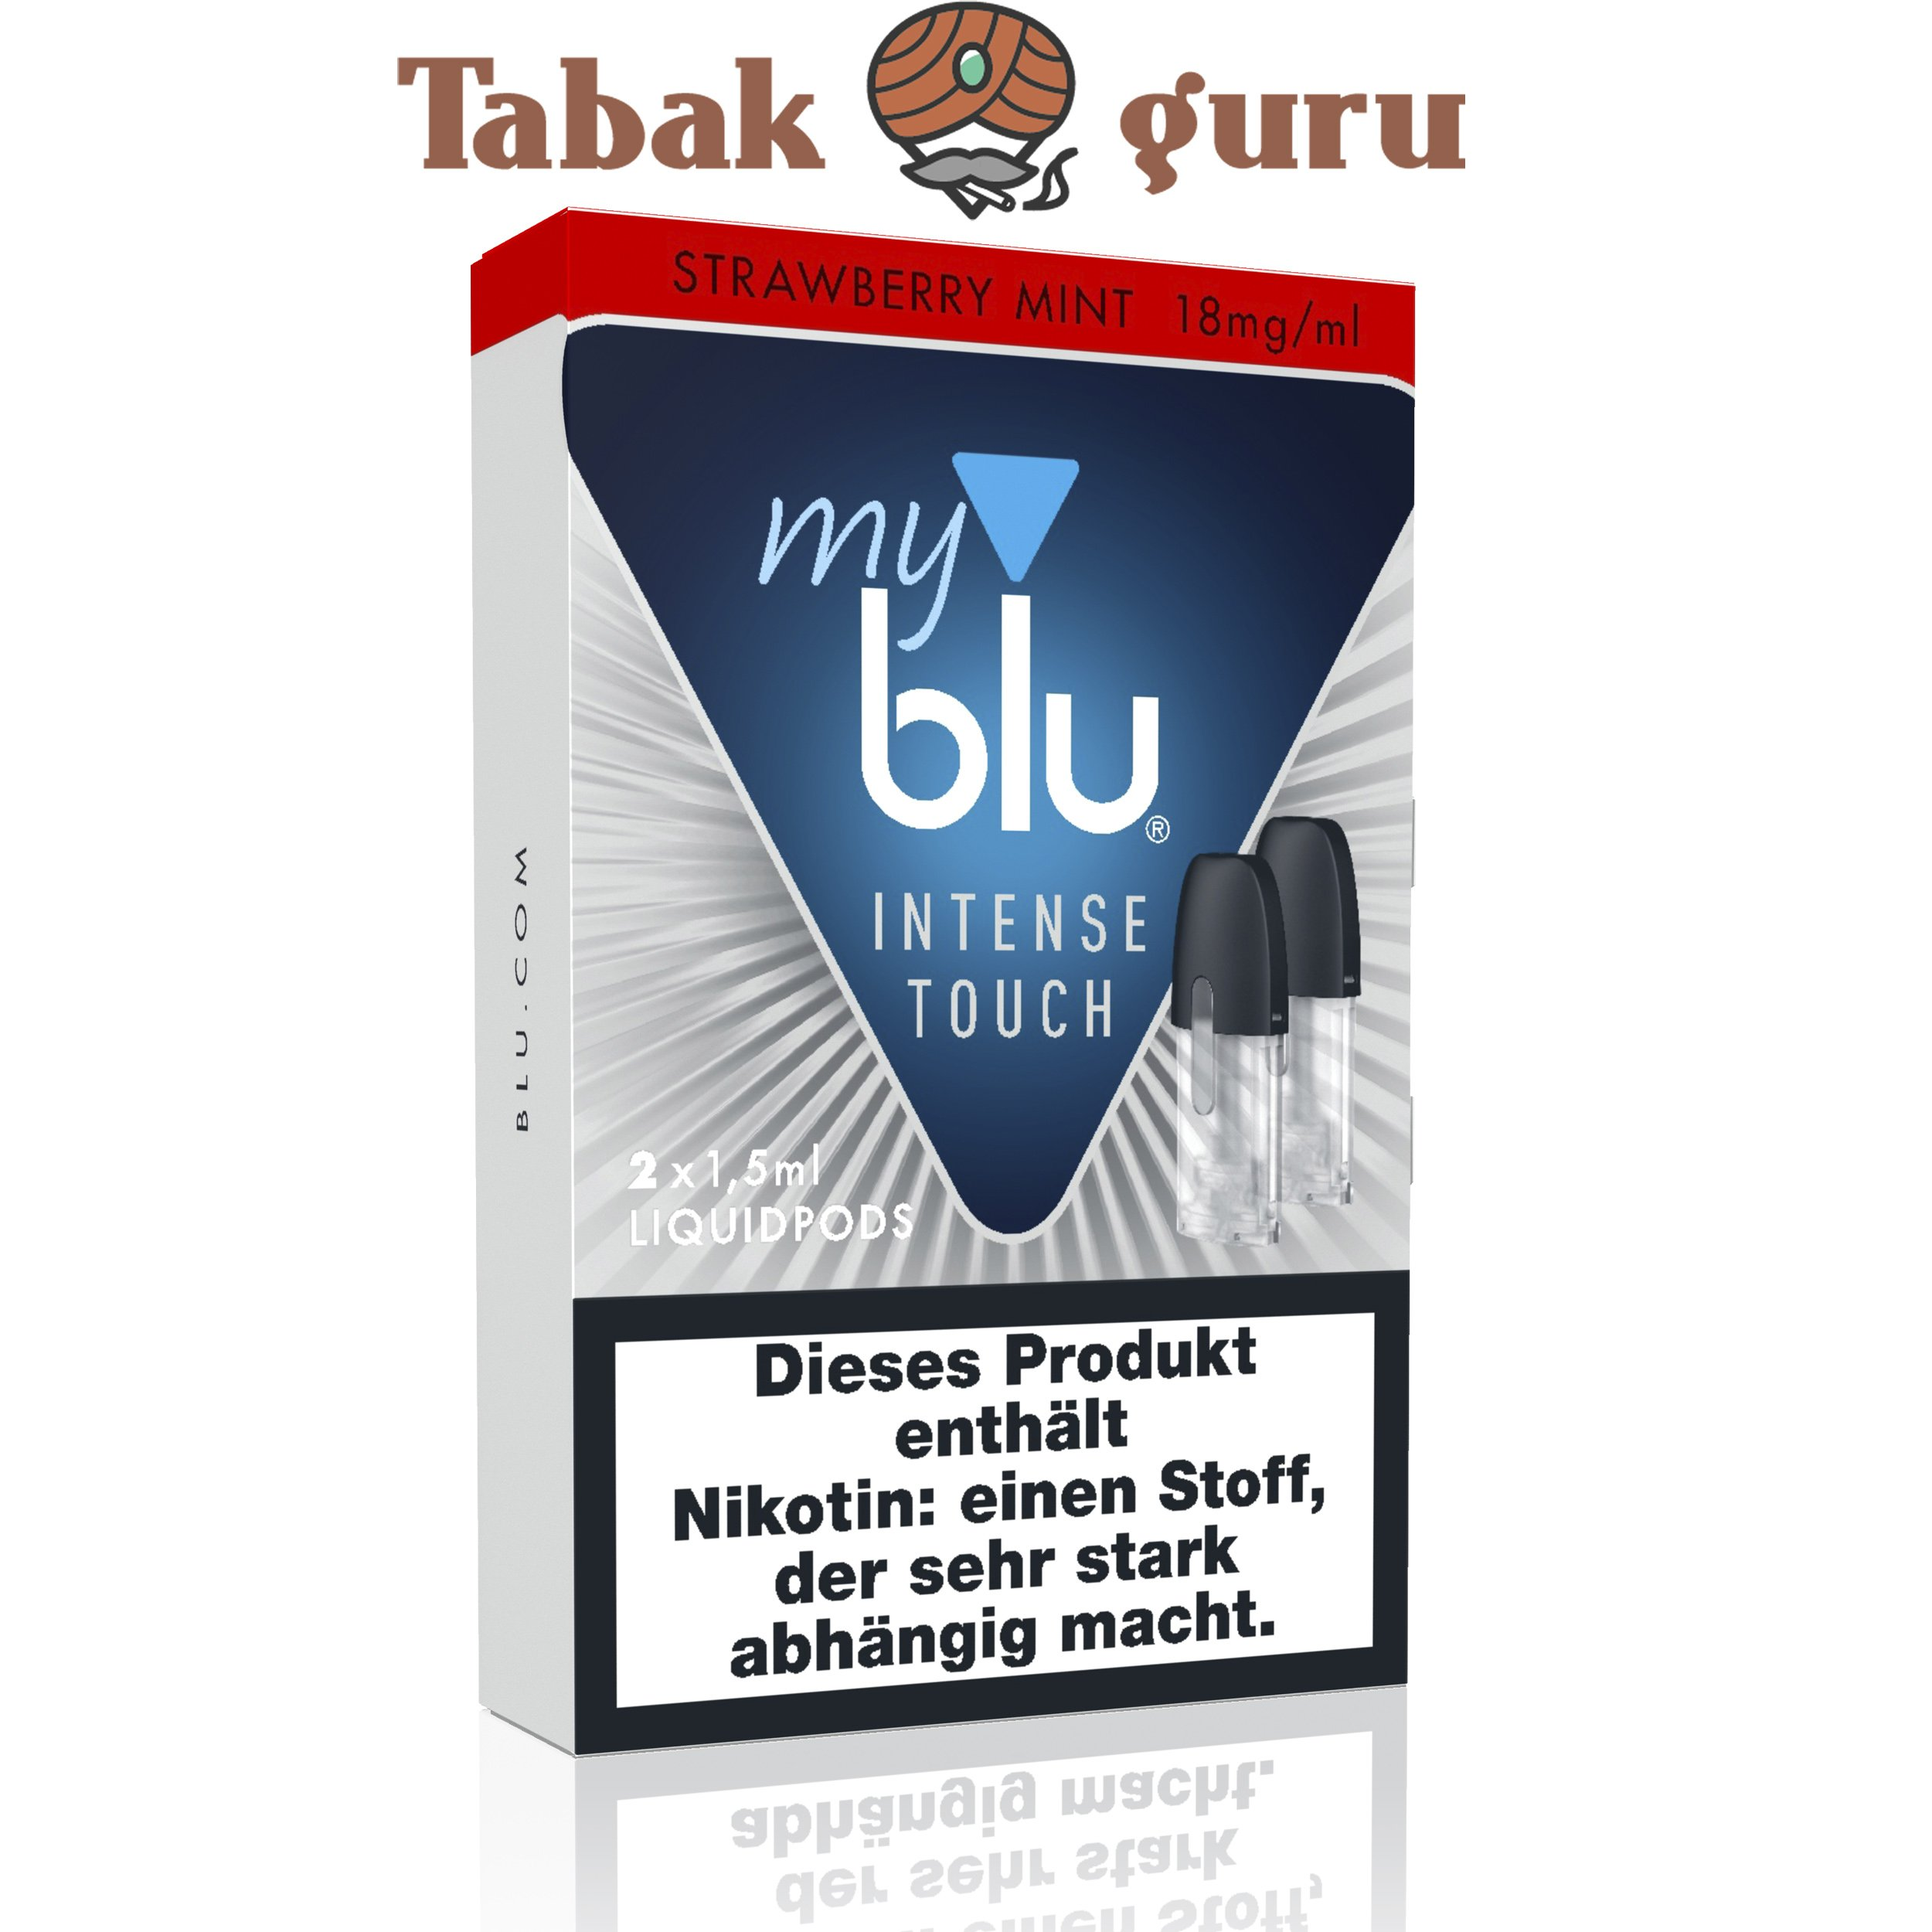 My Blu Intense Touch Nikotinsalz Liquid Pods Strawberry Mint 18 mg/ml